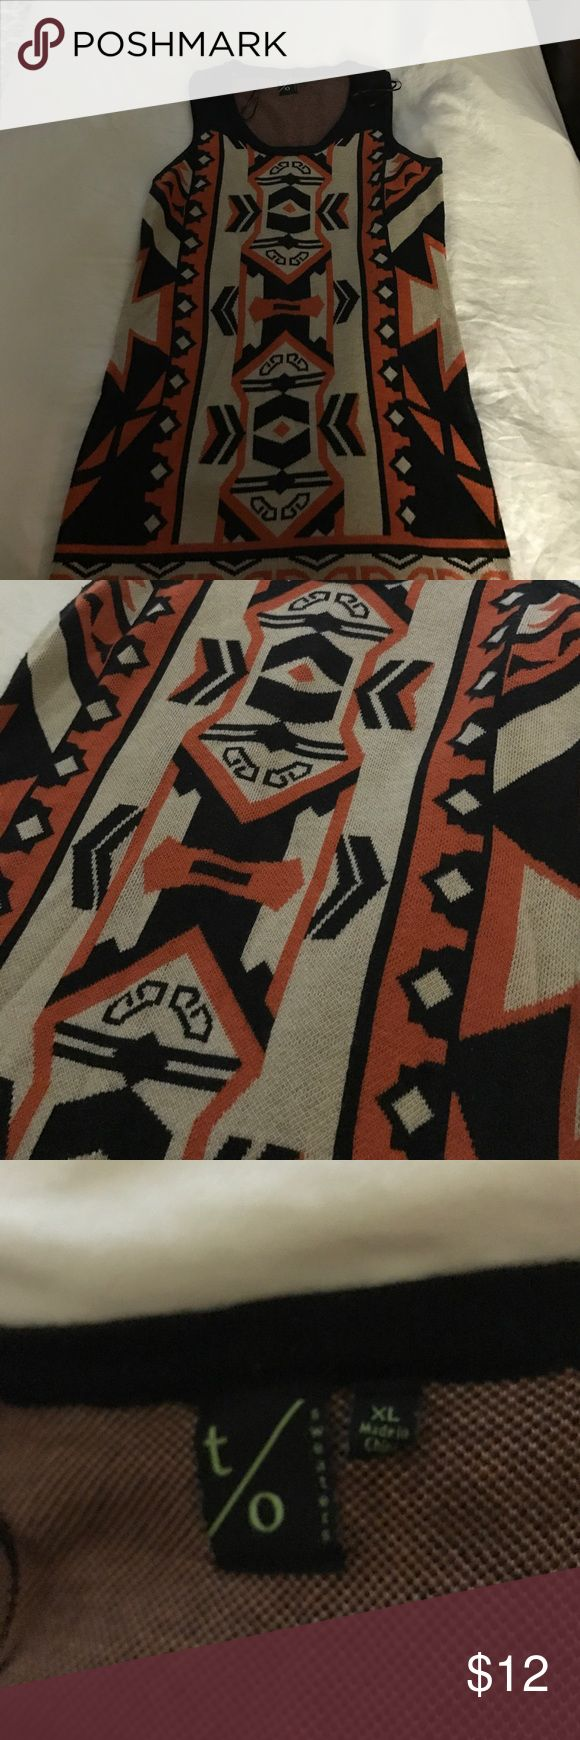 Orange and black tribal sweater dress Very cute orange and black tribal sweater dress. Perfect statement piece. Looks great with leggings. Can be worn dressed up in the office or dressed down for a night out. Dresses